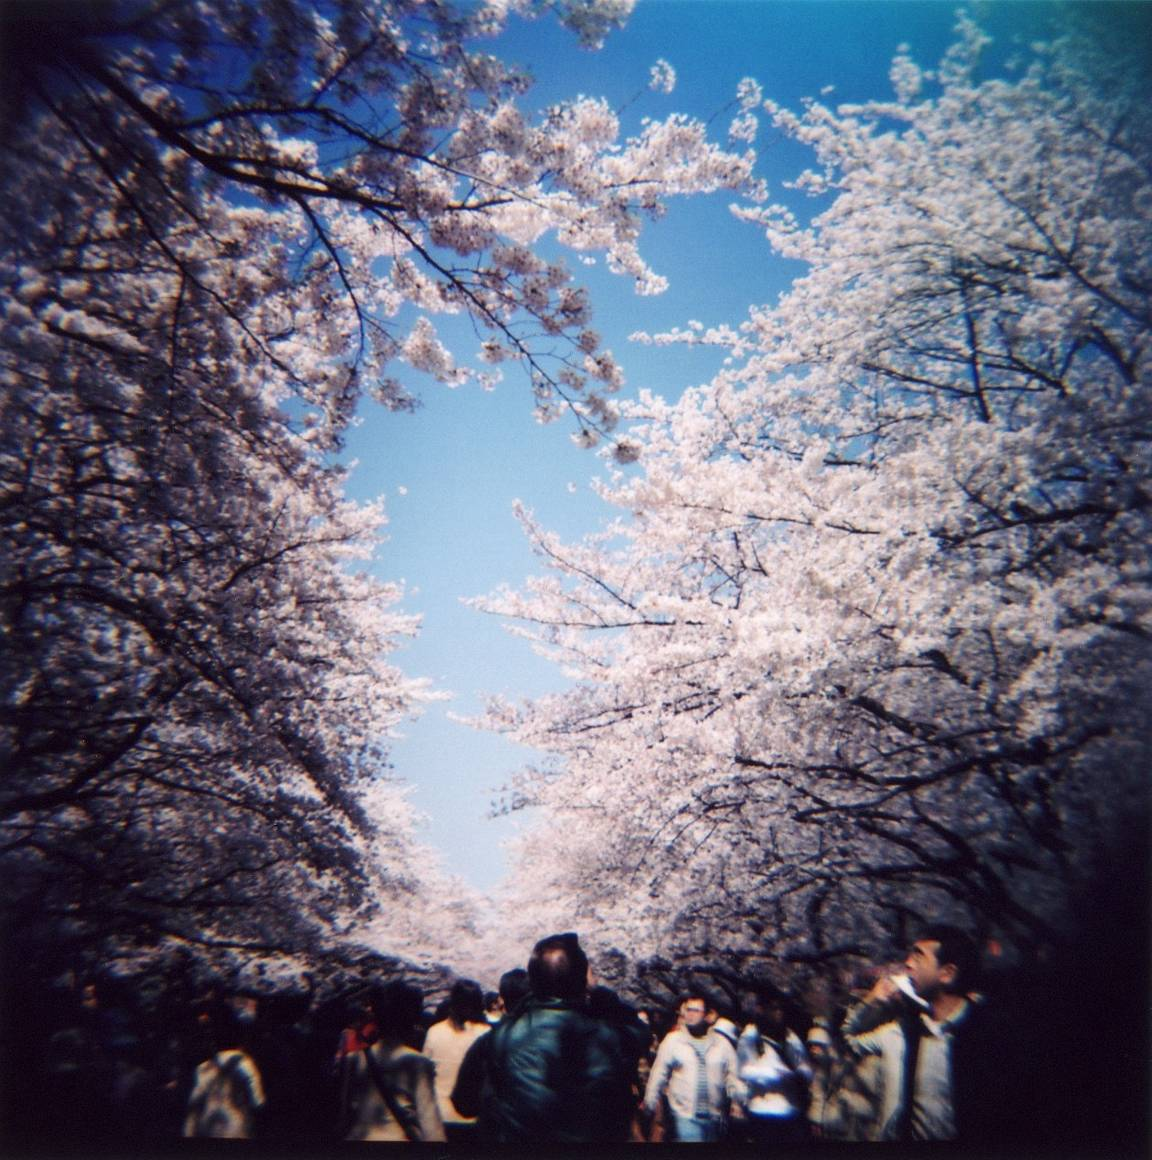 My First Date with the Diana F+: @orangebird